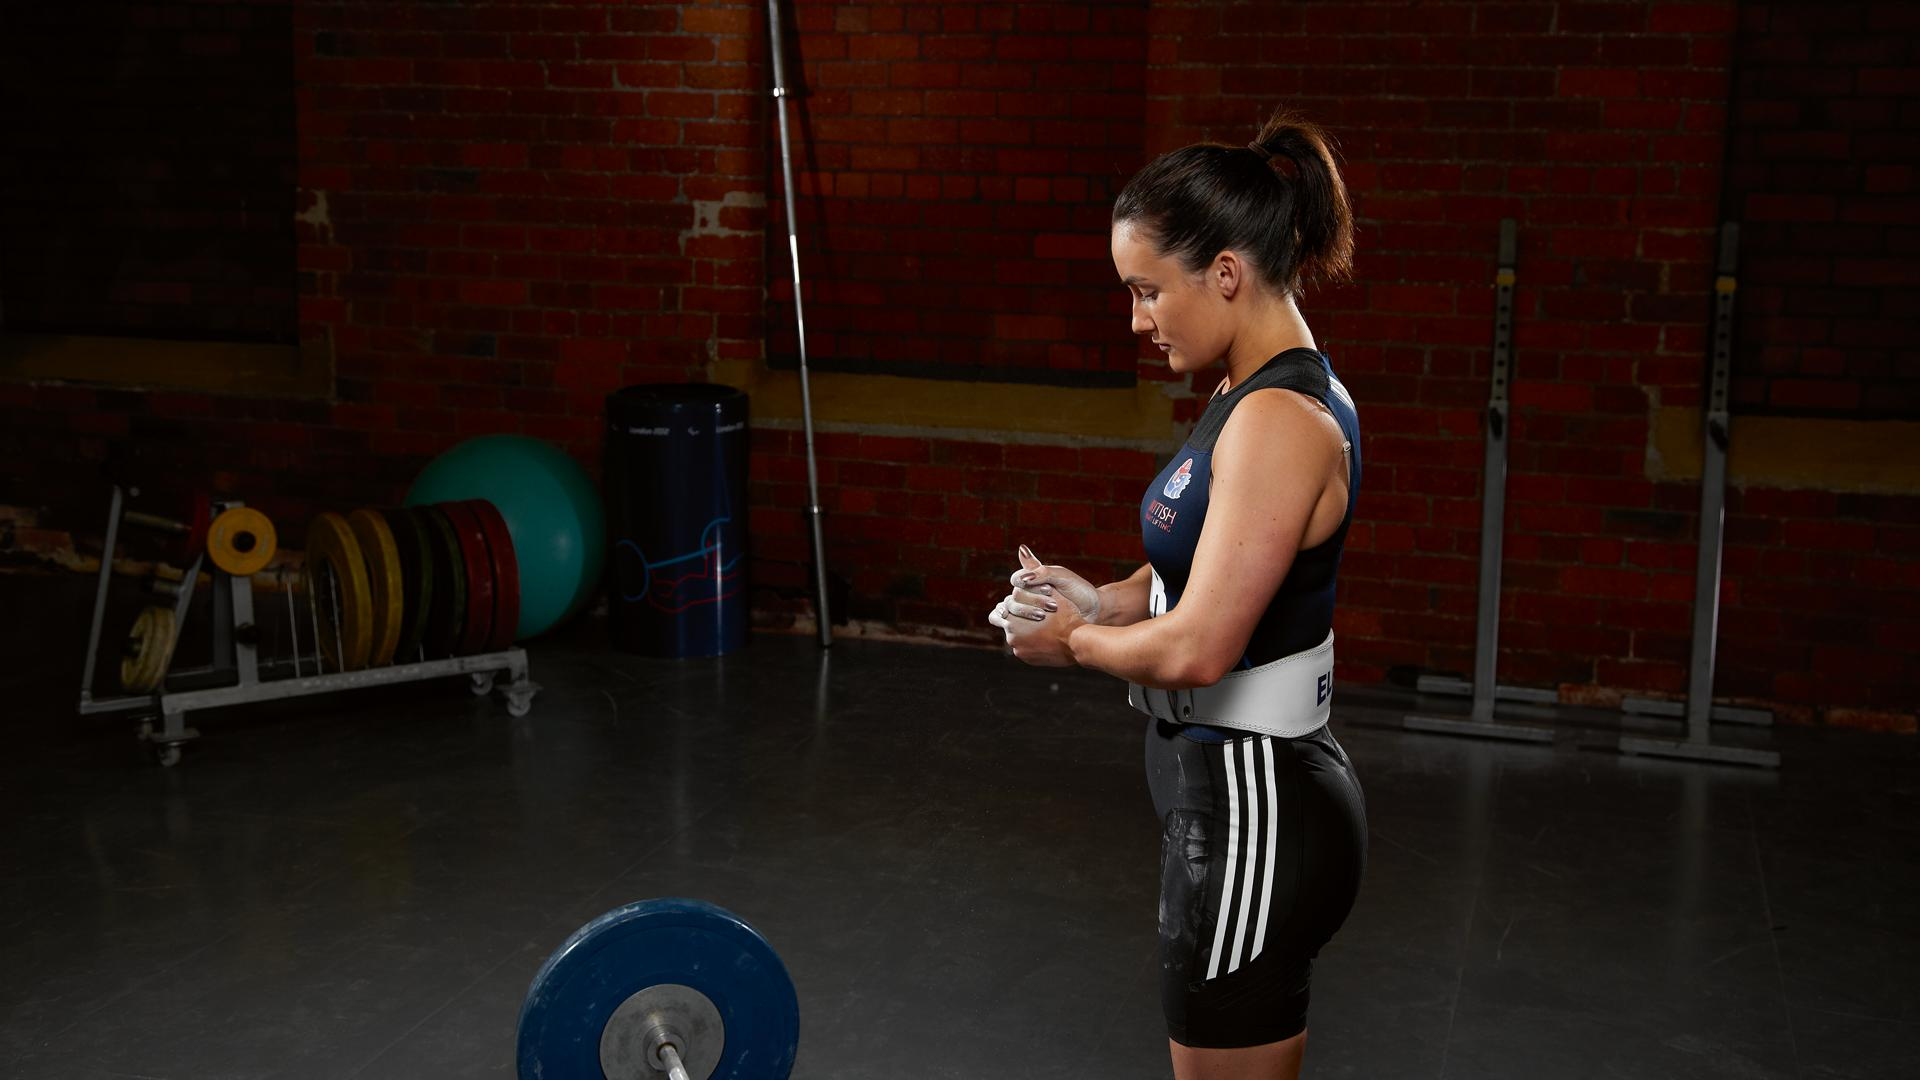 Sarah Davies will be aiming for Weightlifting gold at the Commonwealth Games in Glasgow